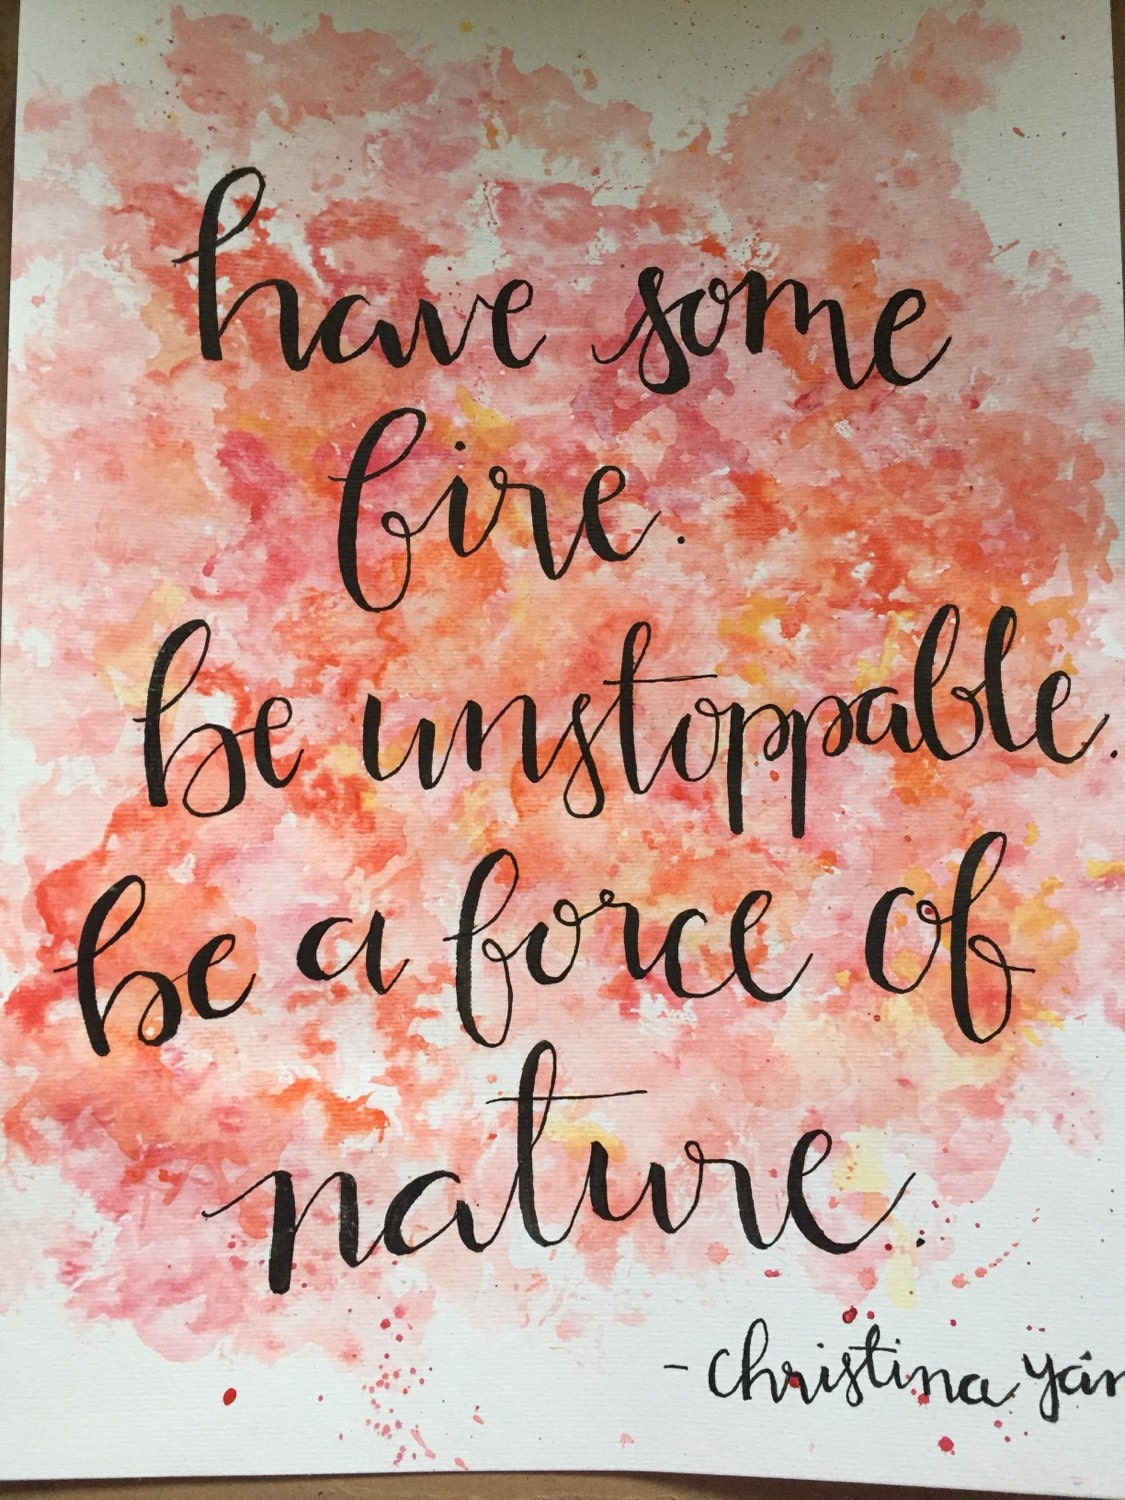 Have Some Fire Grey's Anatomy quote watercolor